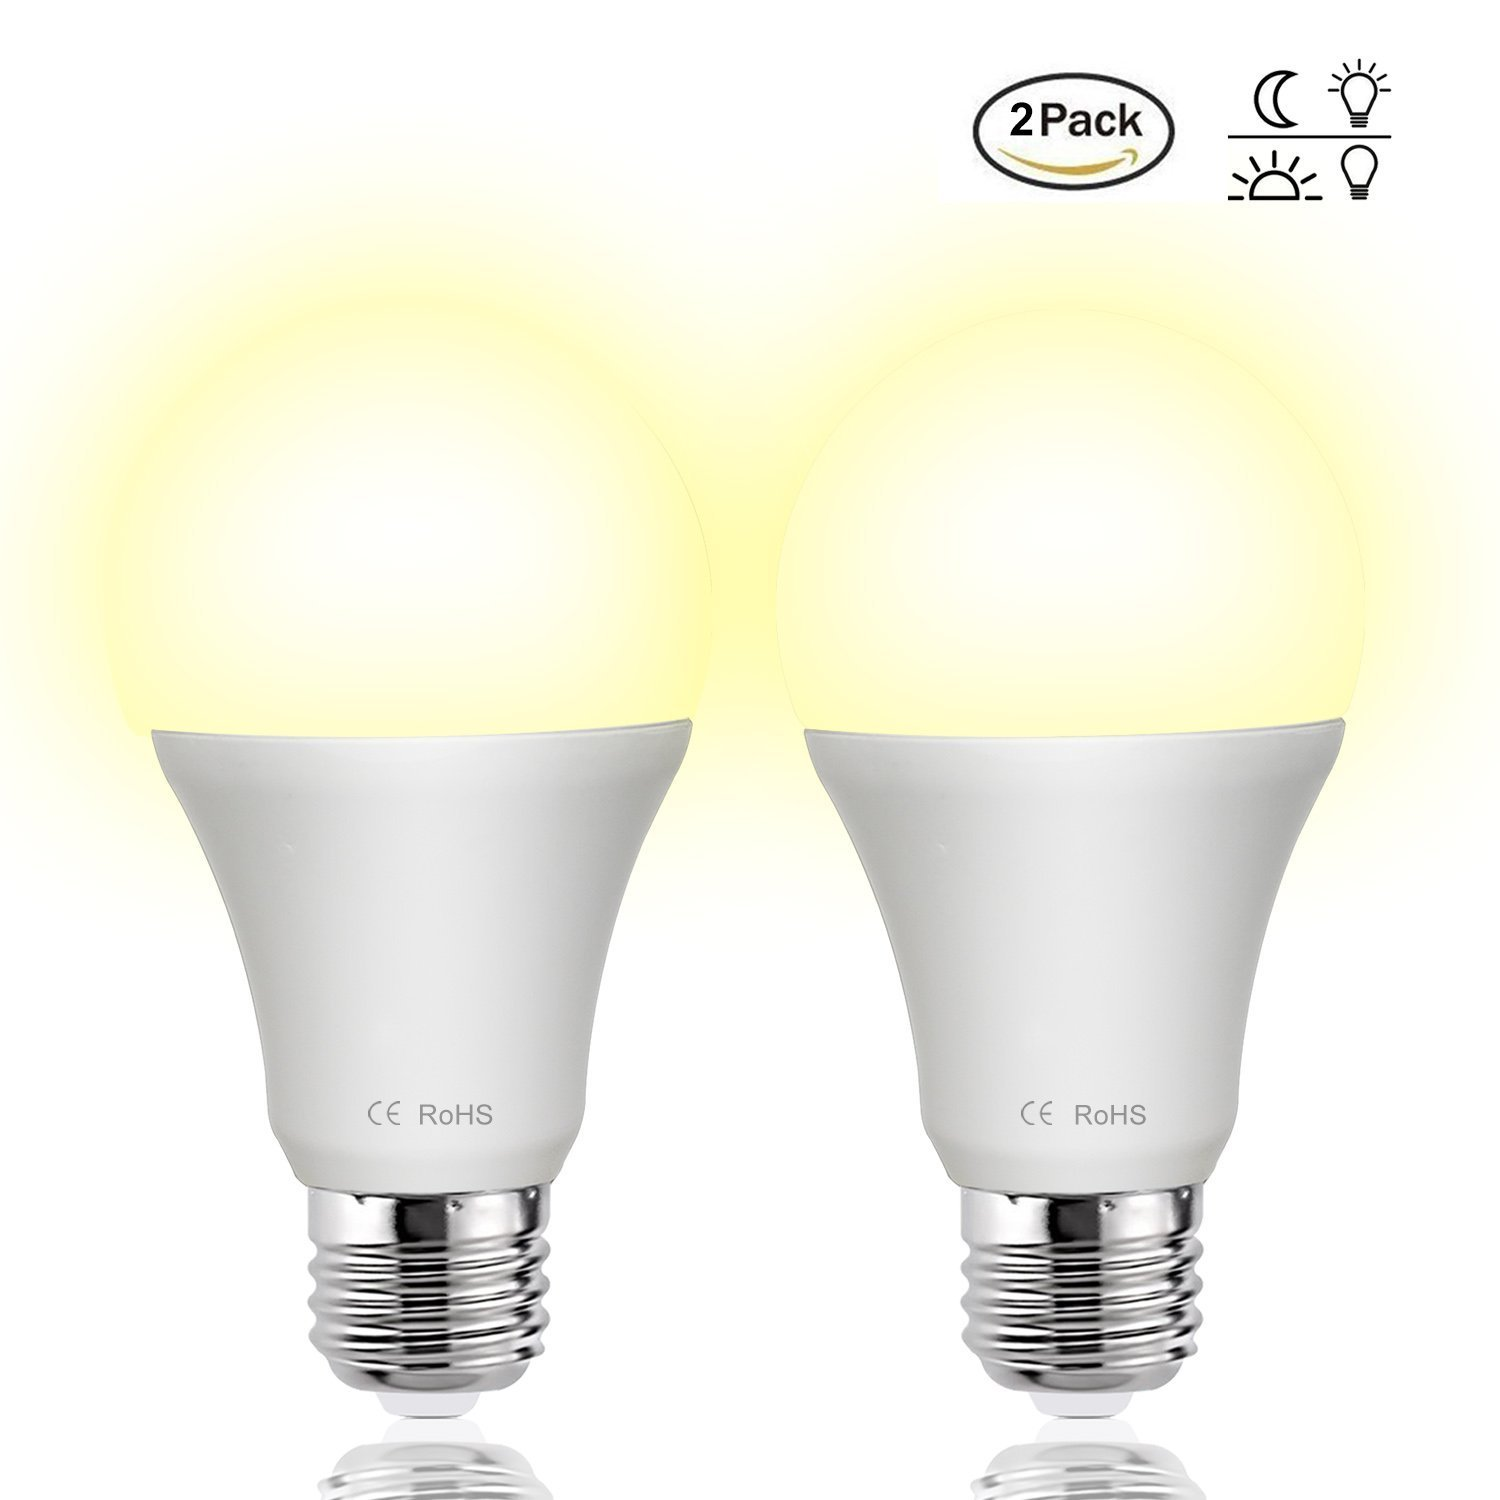 philips exterior dawn till bulbs lighting not bulb light dusk led lowes indoor lights outdoor sensor to working reviews switch